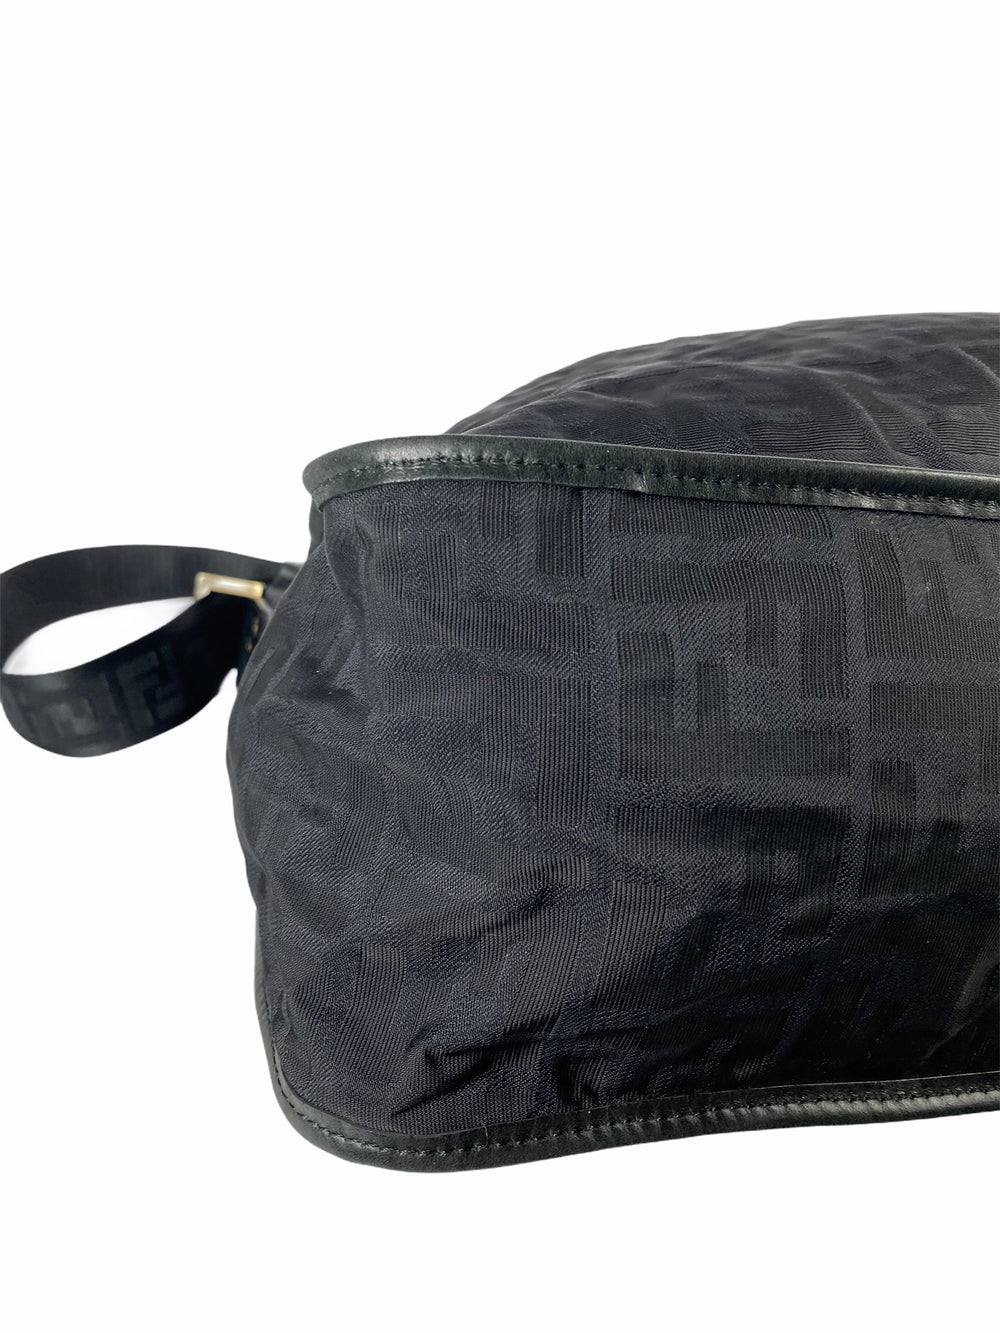 Fendi Black Monogram Canvas Messenger Bag - As Seen On Instagram 06/09/2020